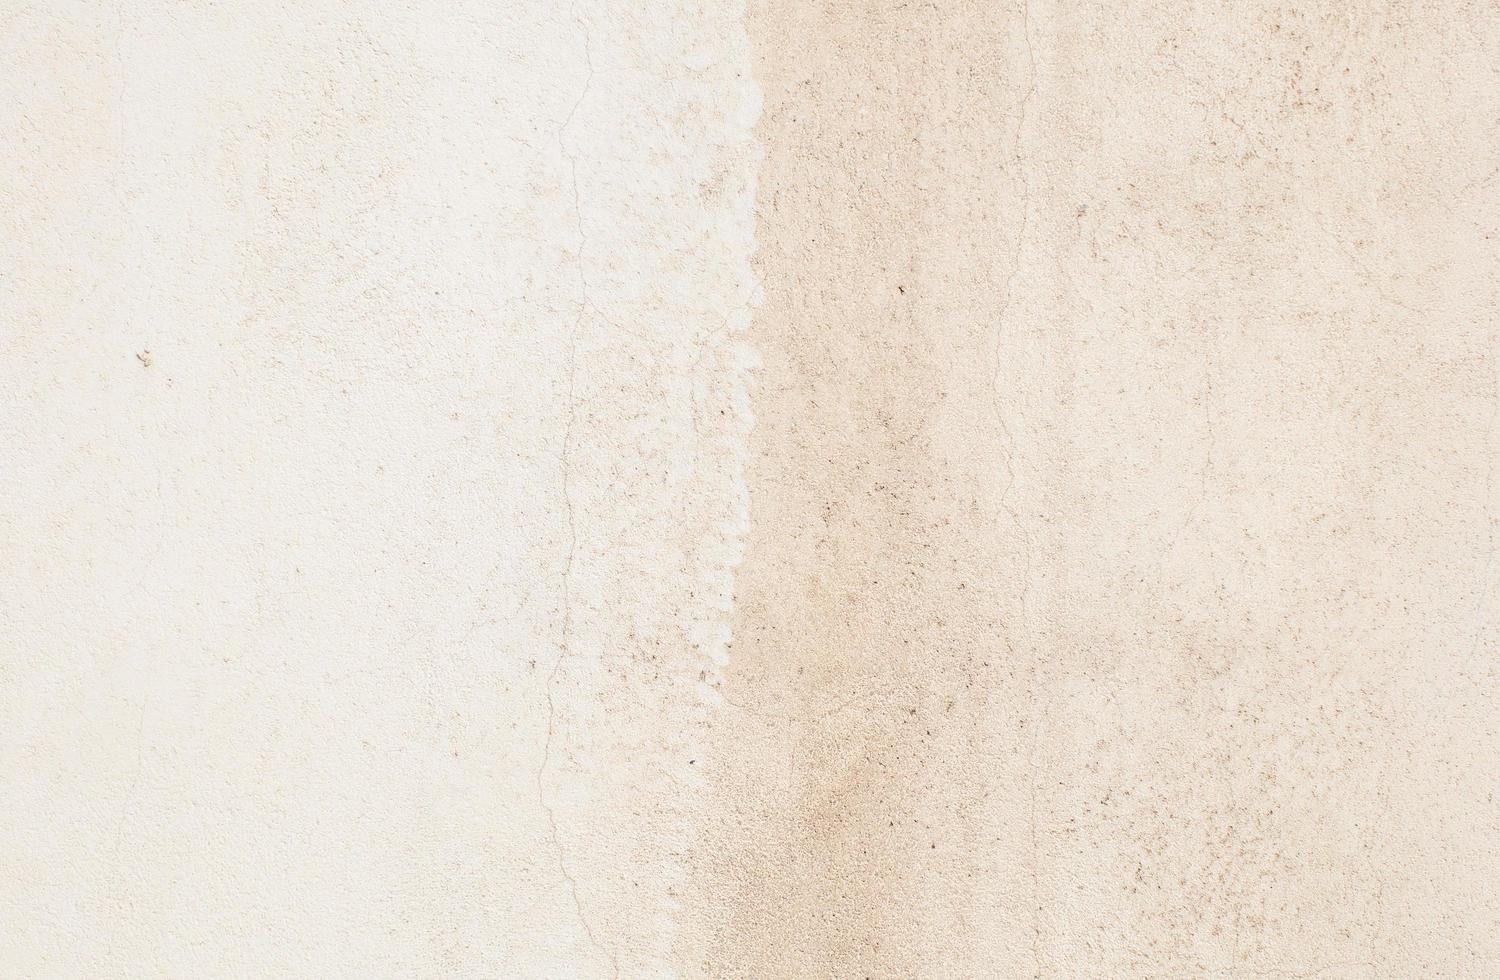 Neutral paint on a wall photo